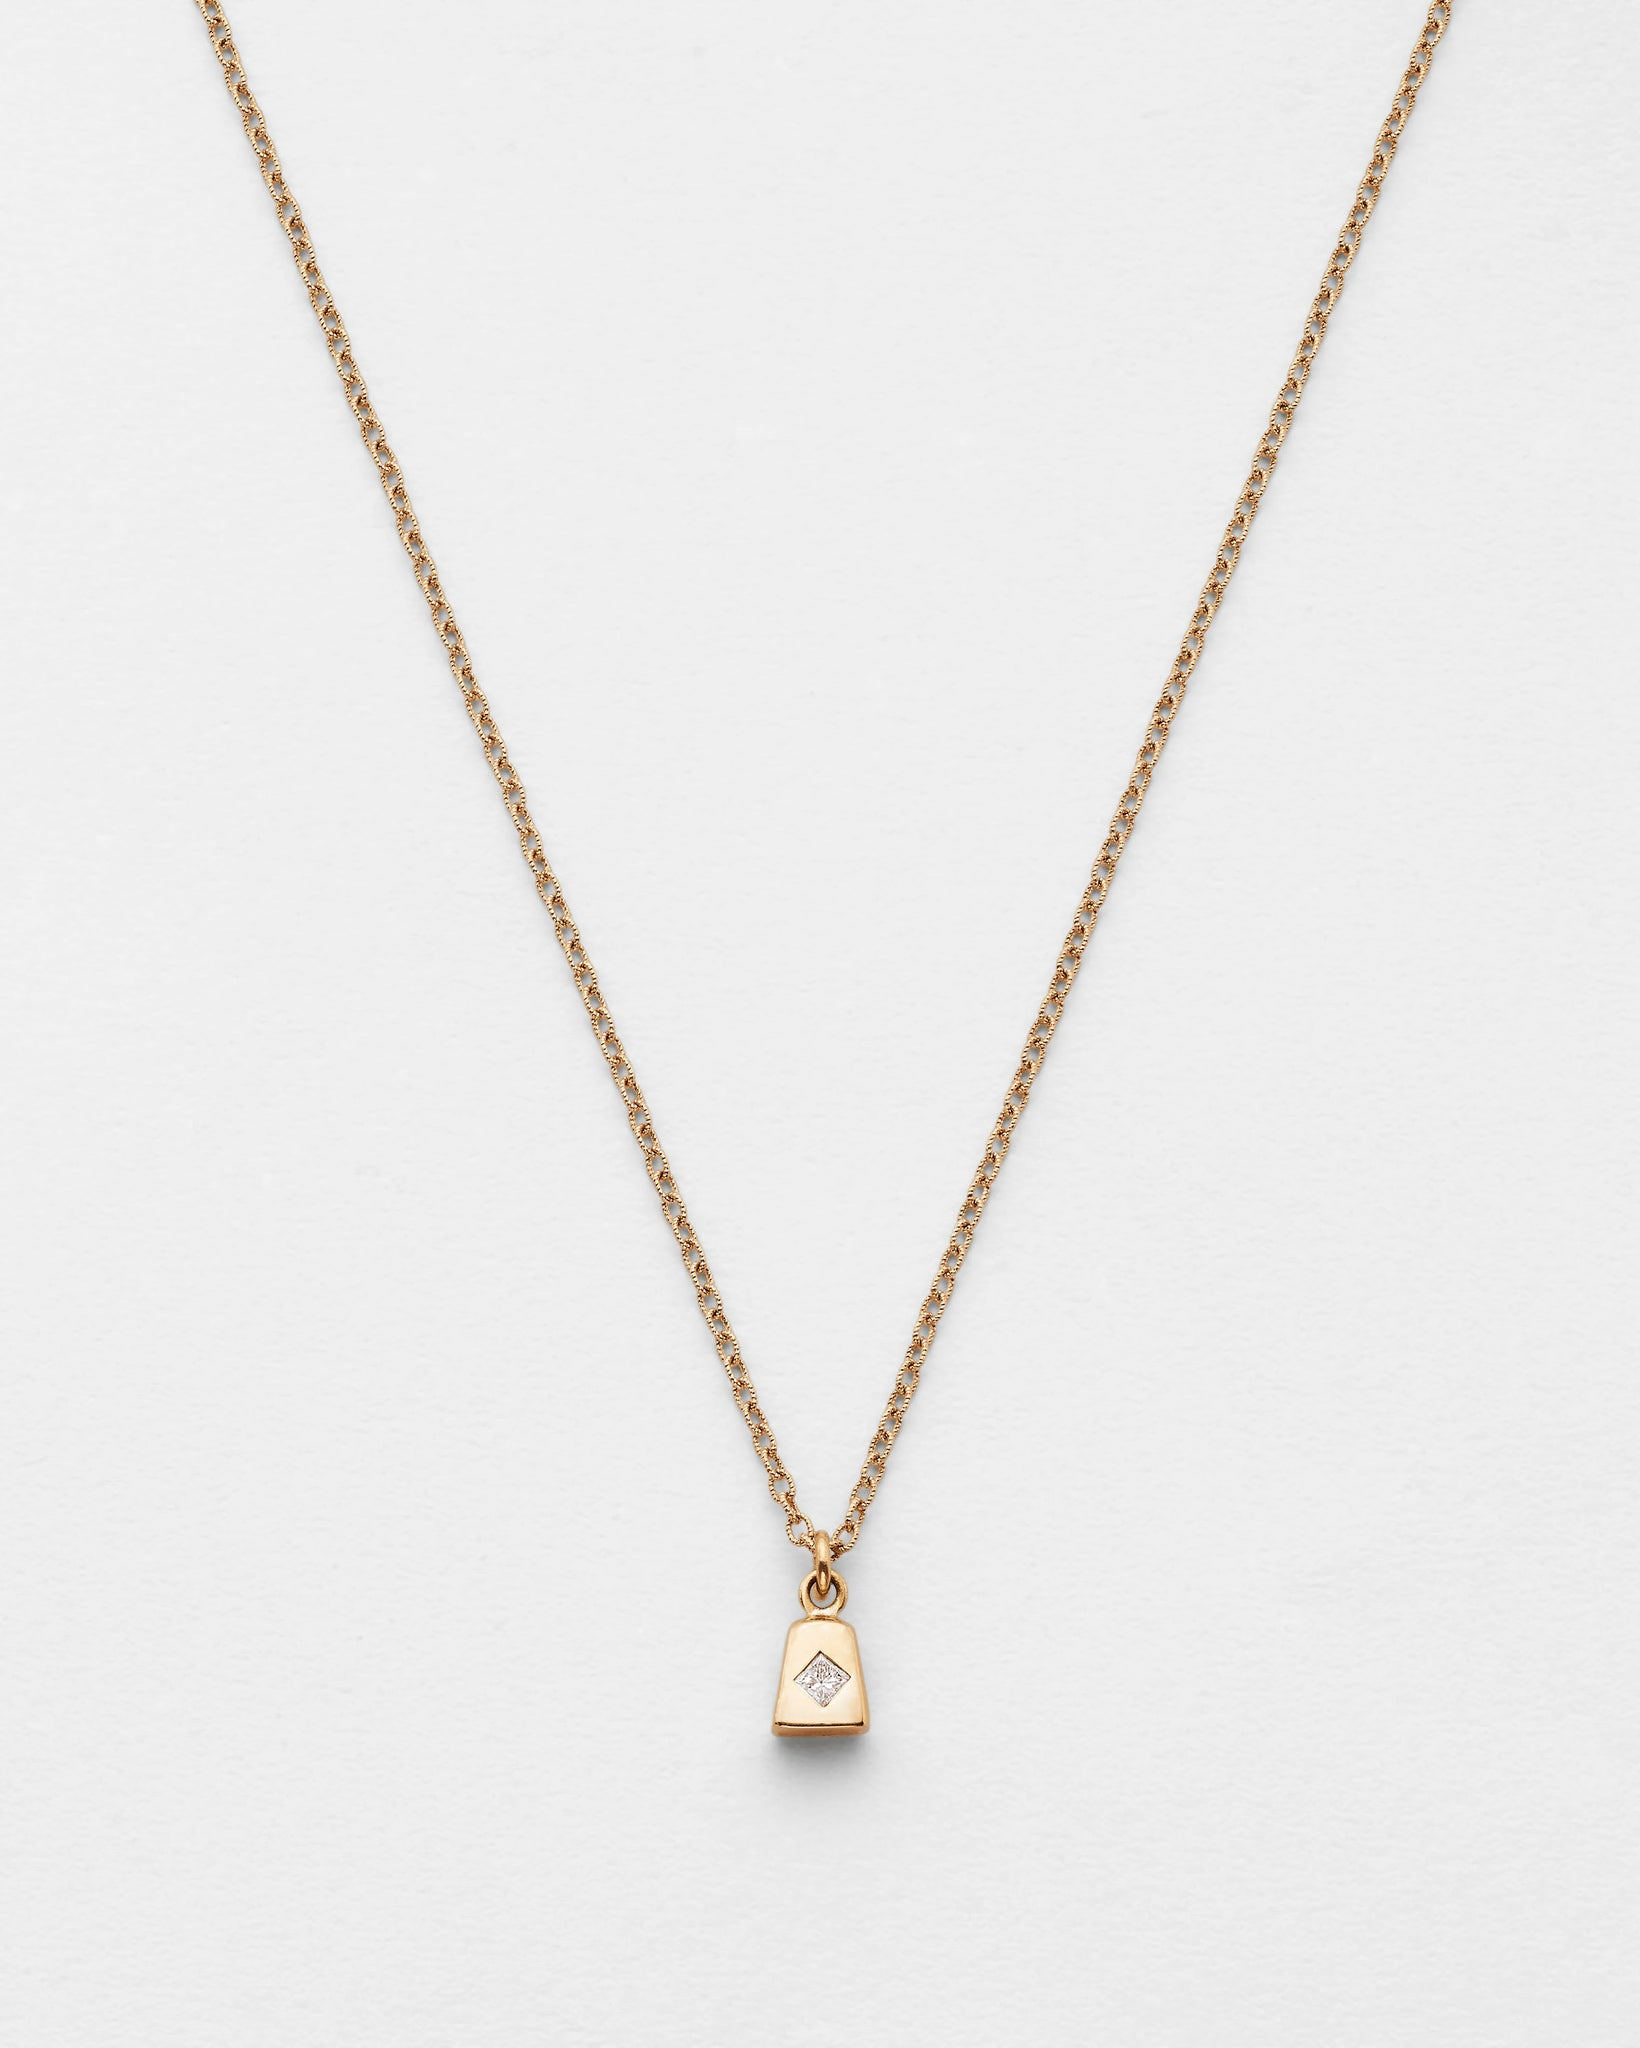 Chain Reaction Cowbell Necklace